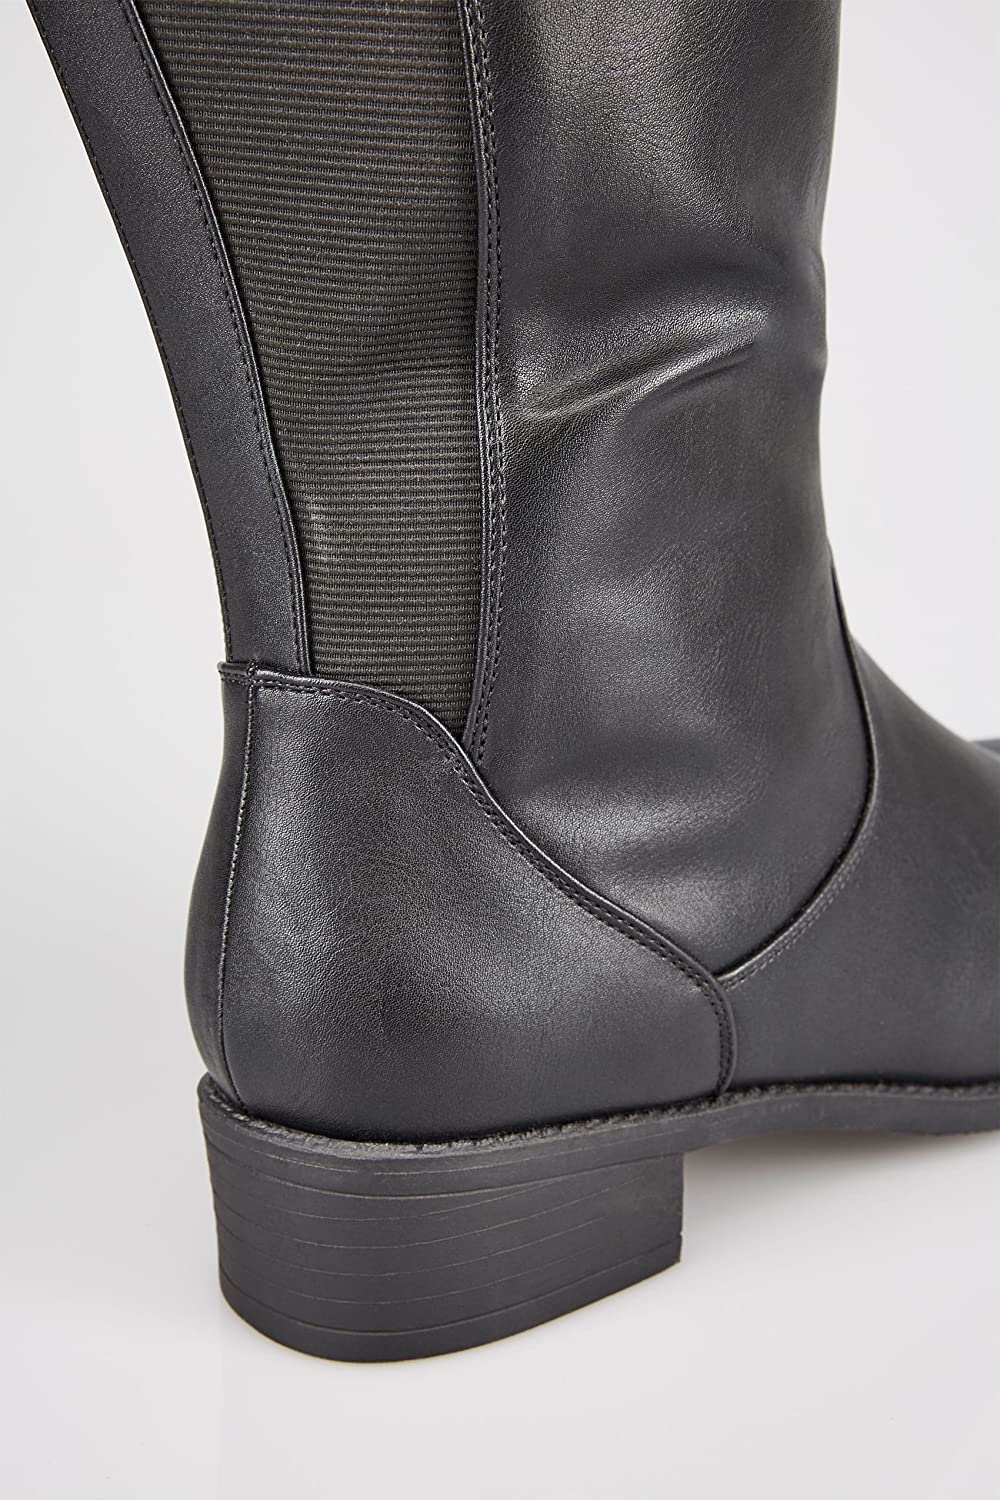 Wide Fit Women's Xl Calf High Leg Boots With Stretch Panels, Sizes 4eee To 10eee